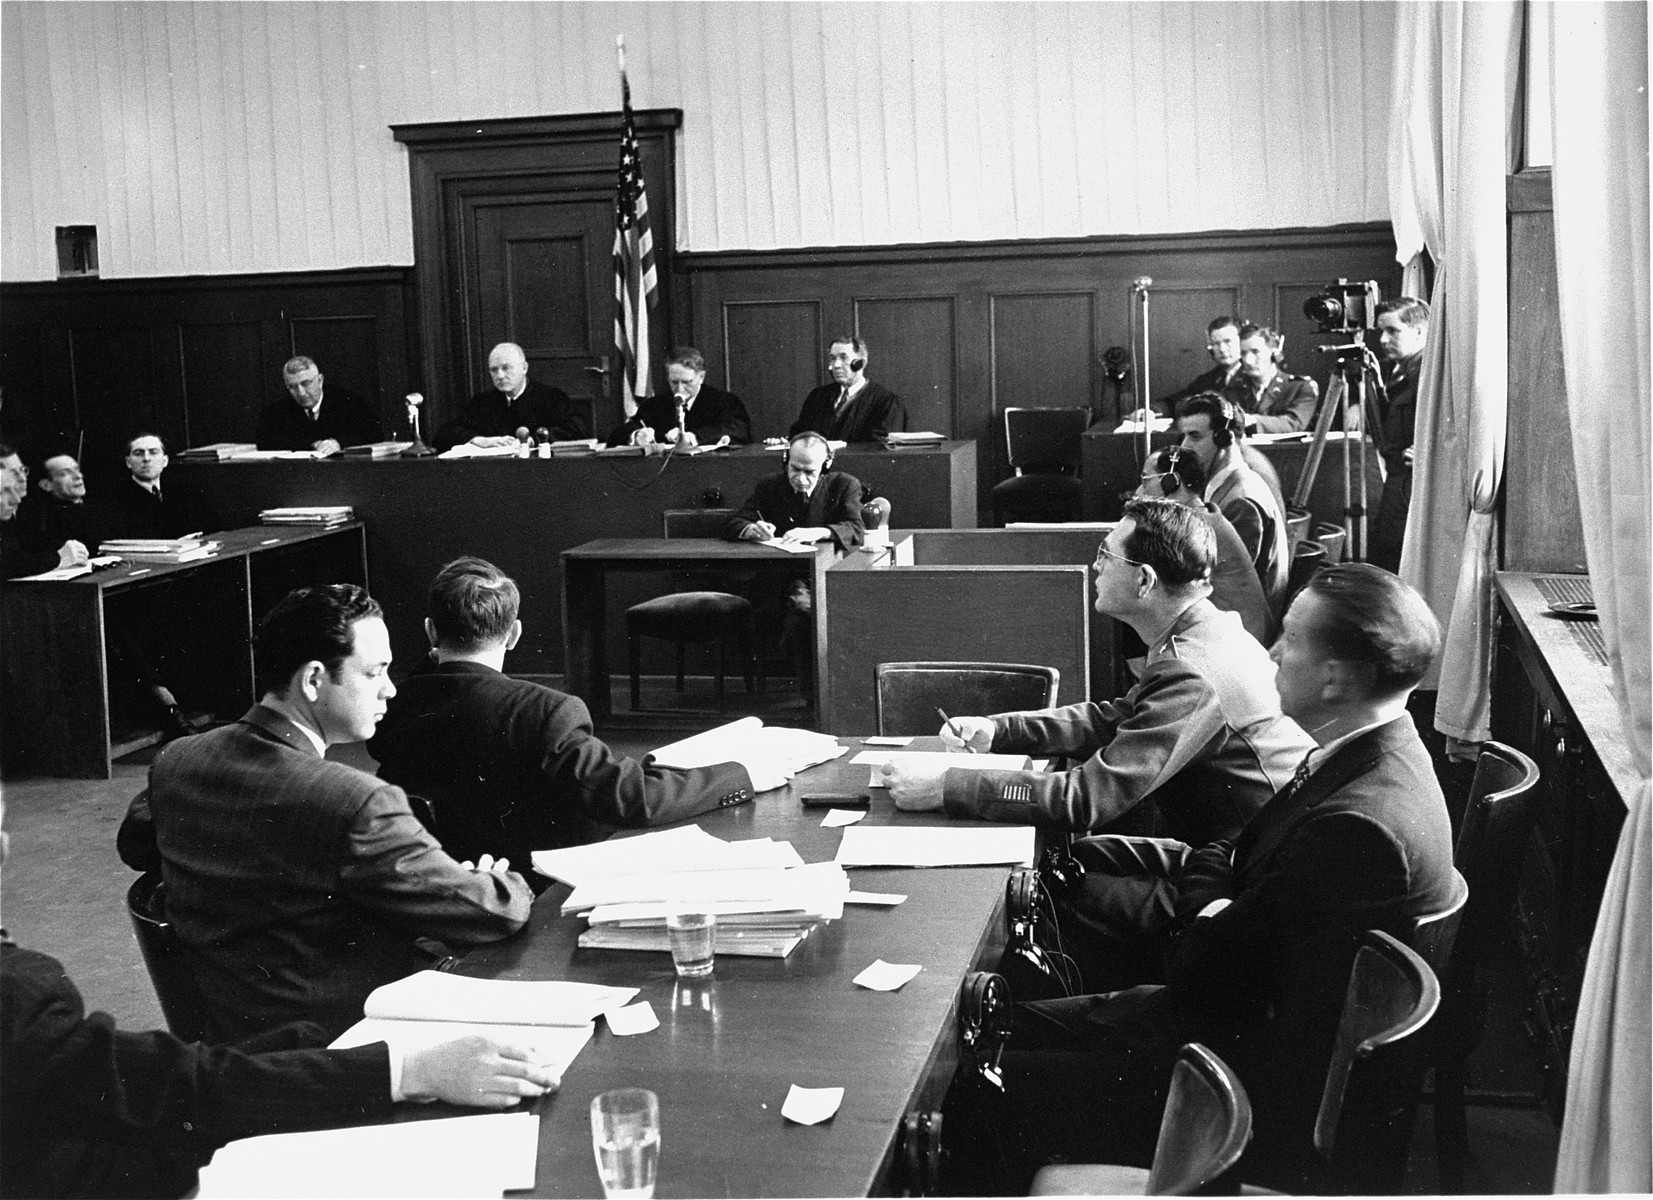 Members of the prosecution team (foreground) during a session of the Milch Trial.  One the left side of table, looking down is Jack Robbins.